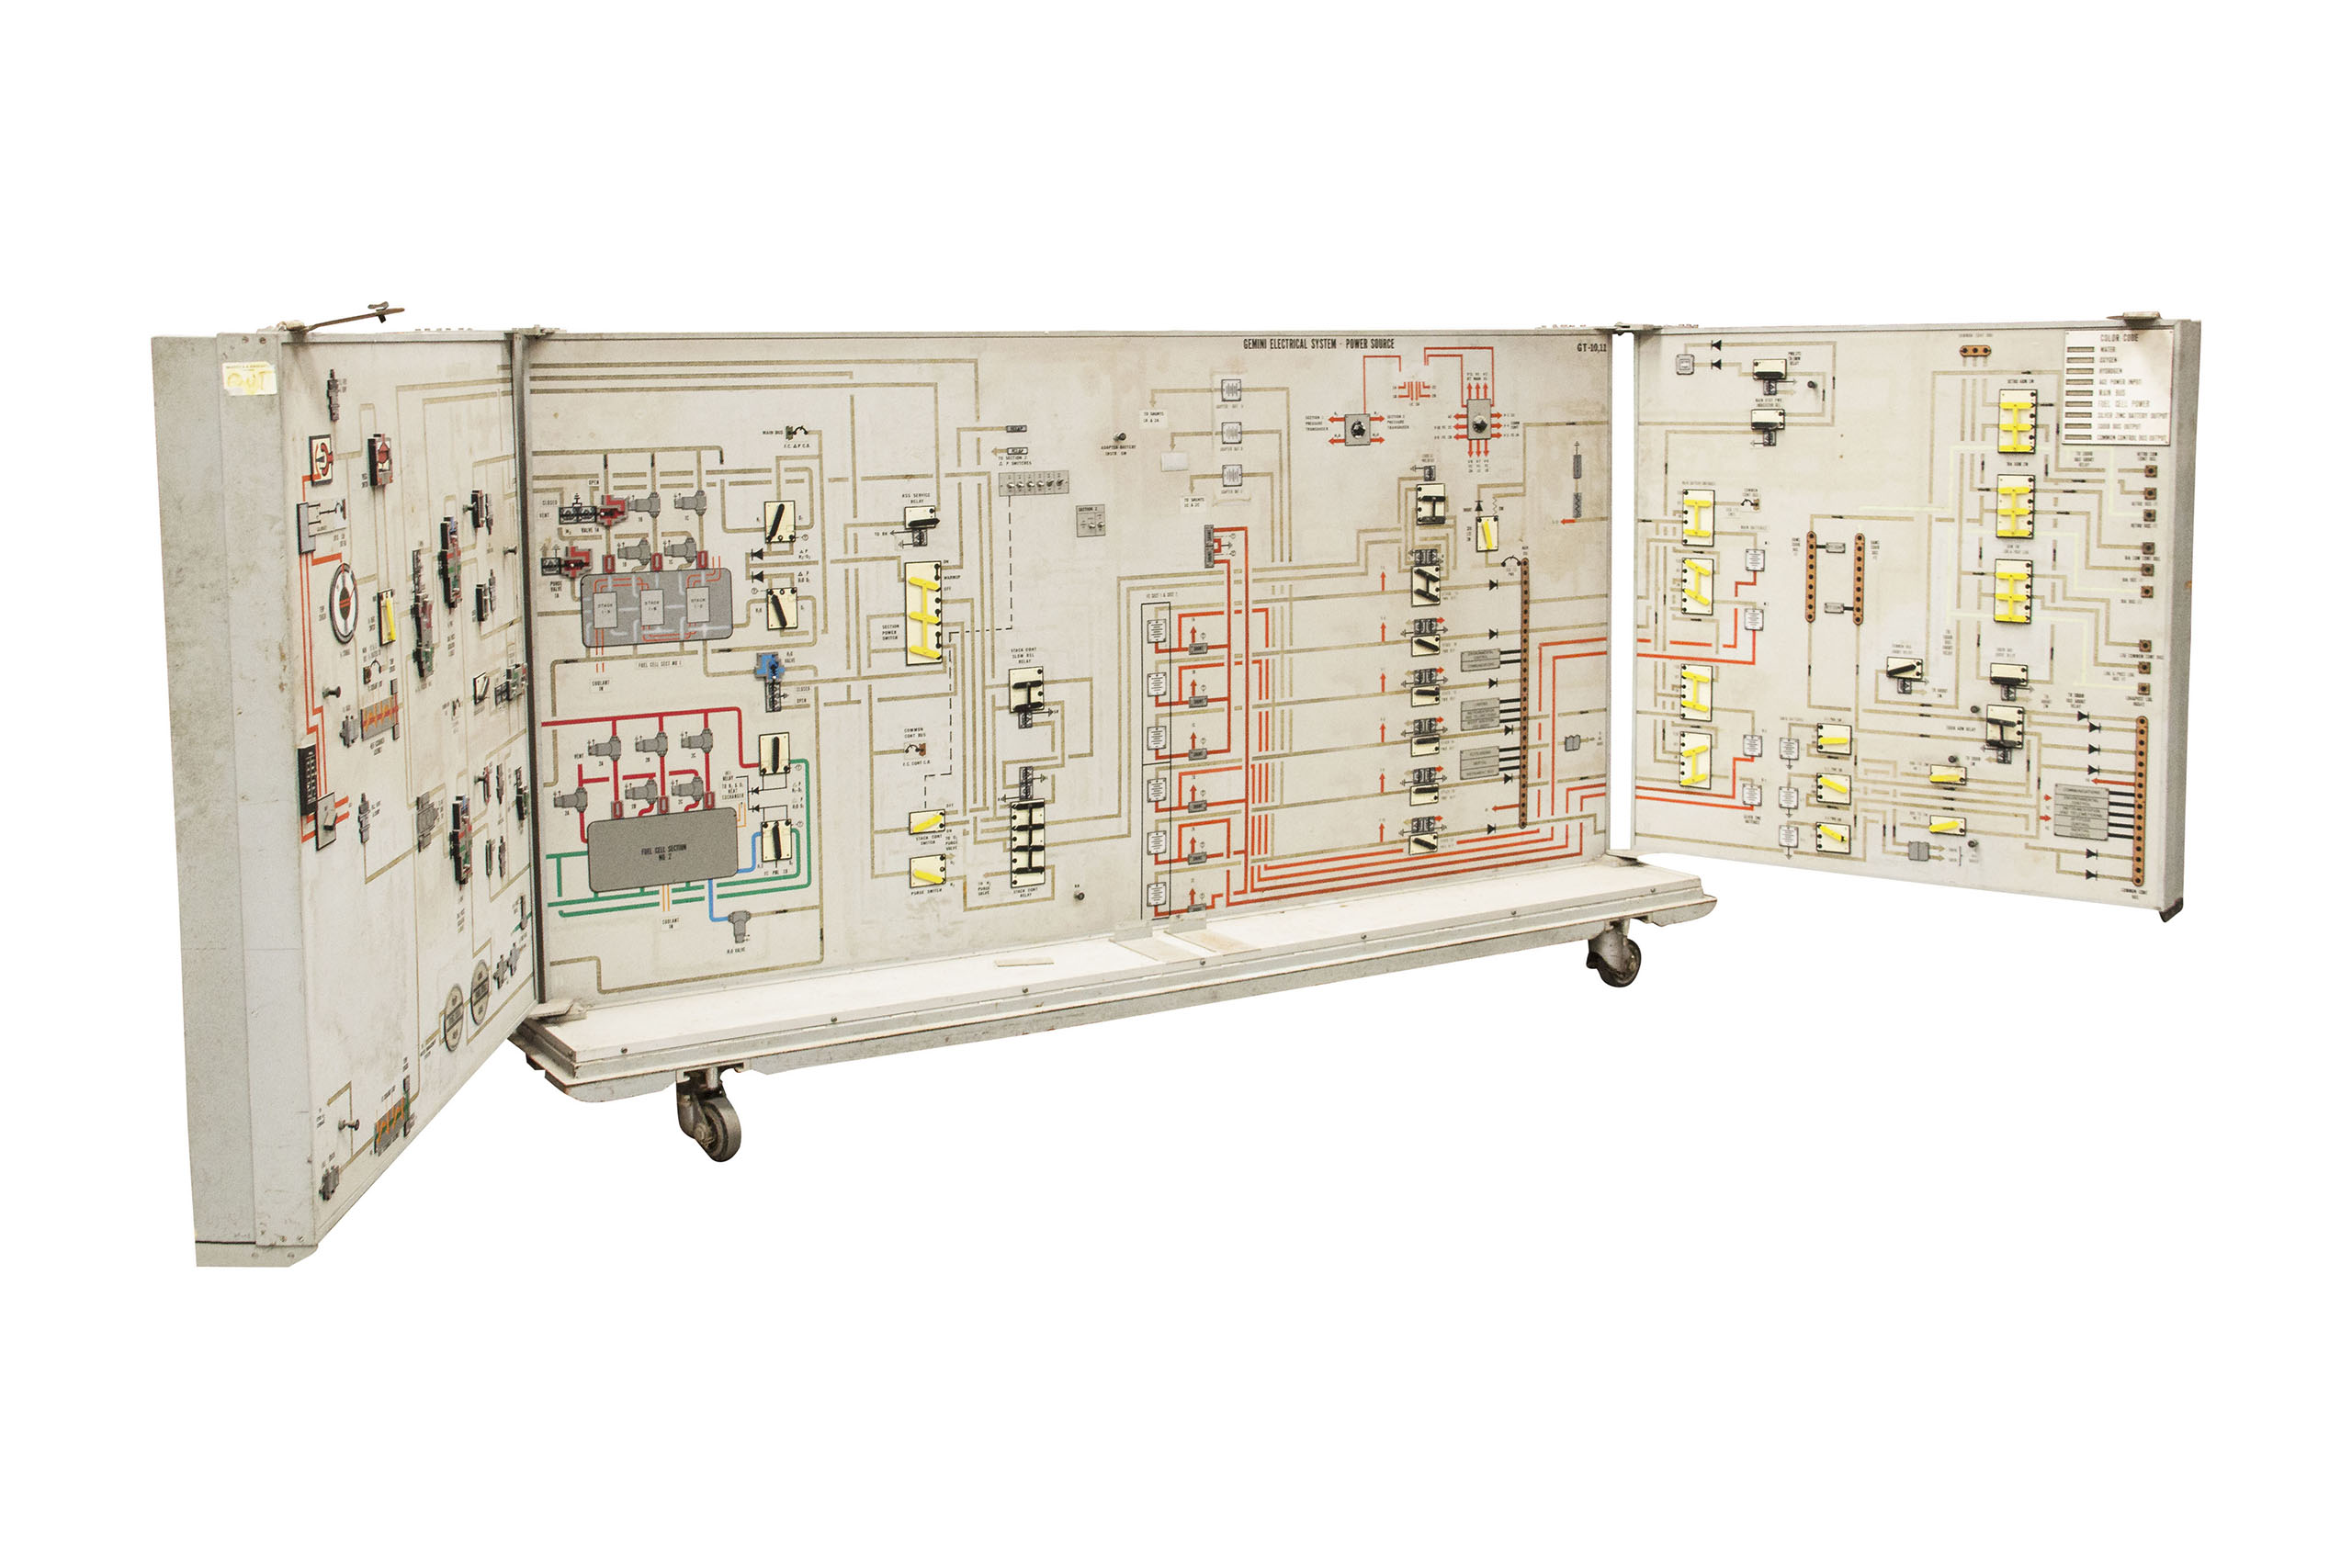 The Gemini 133P trainer assembly was used to train the Gemini astronauts at the Manned Spacecraft Center in Houston. Essentially a duplicate of the display panels and instruments found inside the Gemini spacecraft, the system was used to learn the Attitude control and Maneuver Electronics System (ACME), the Orbit Attitude Maneuvering System (OAMS), and the Landing & Post Landing Procedures, amongst many other skills.